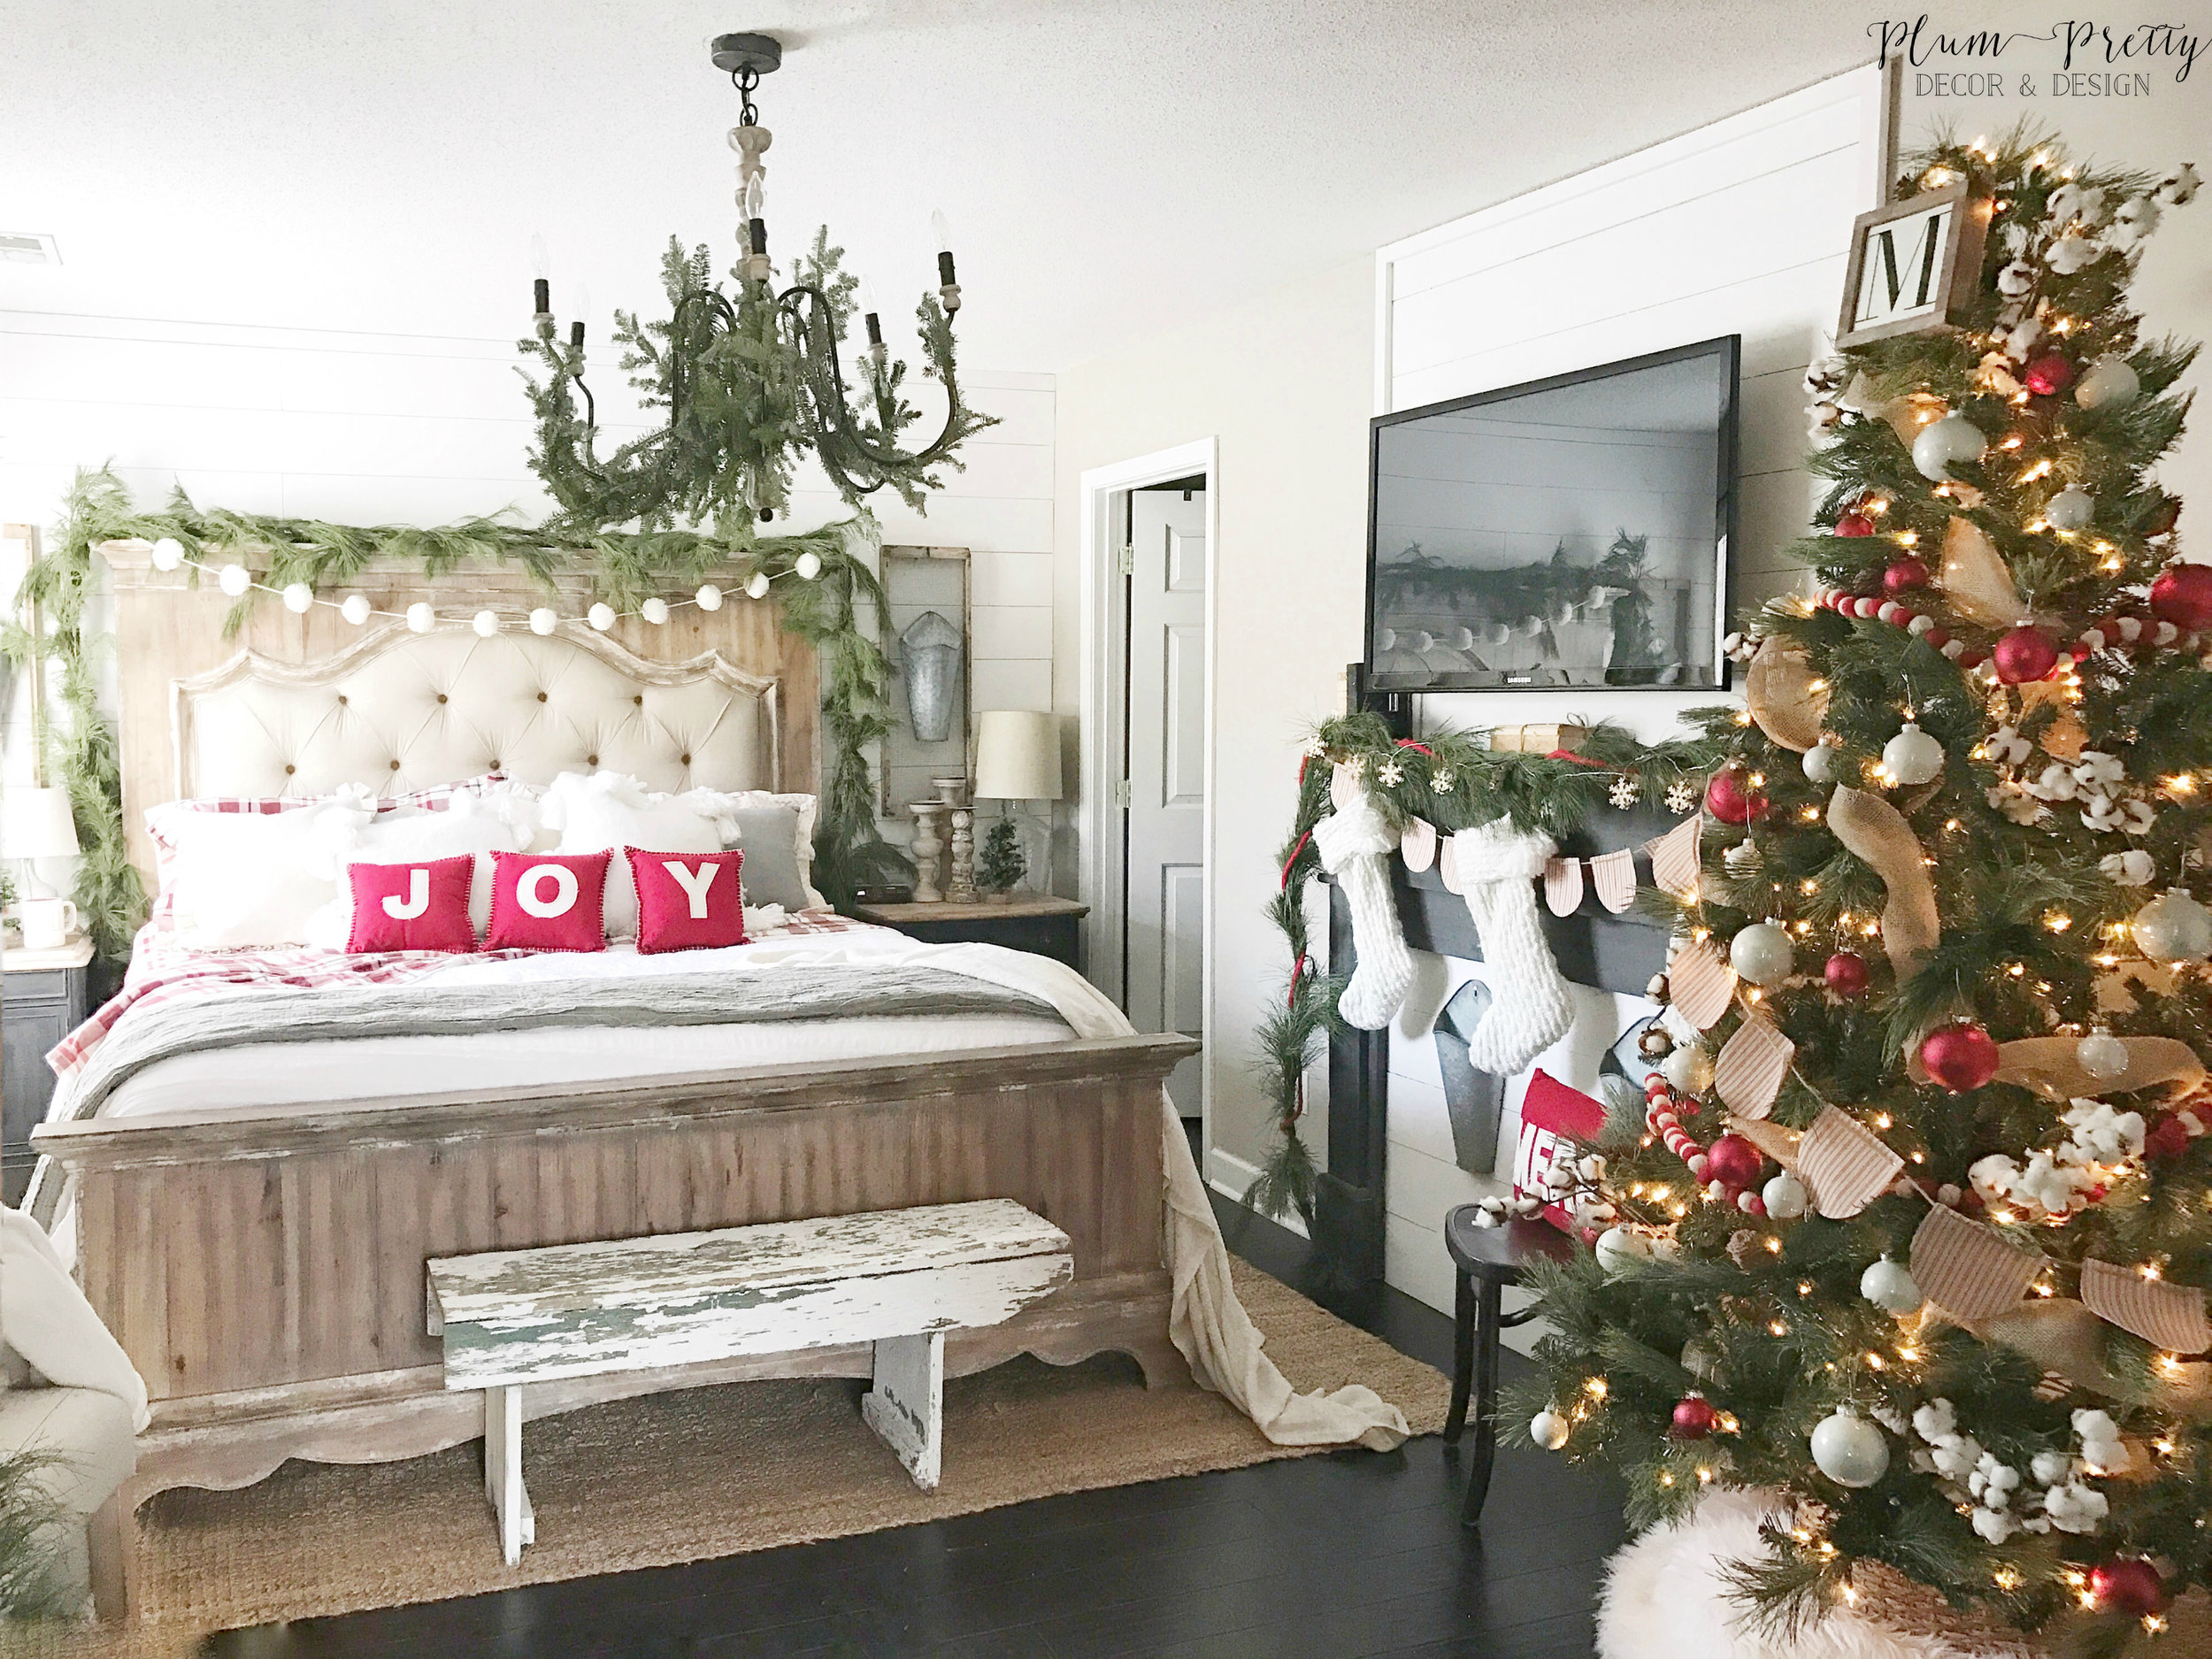 Farmhouse Christmas Bedroom Tour by Kayla Miller or Plum Pretty Decor and Design.